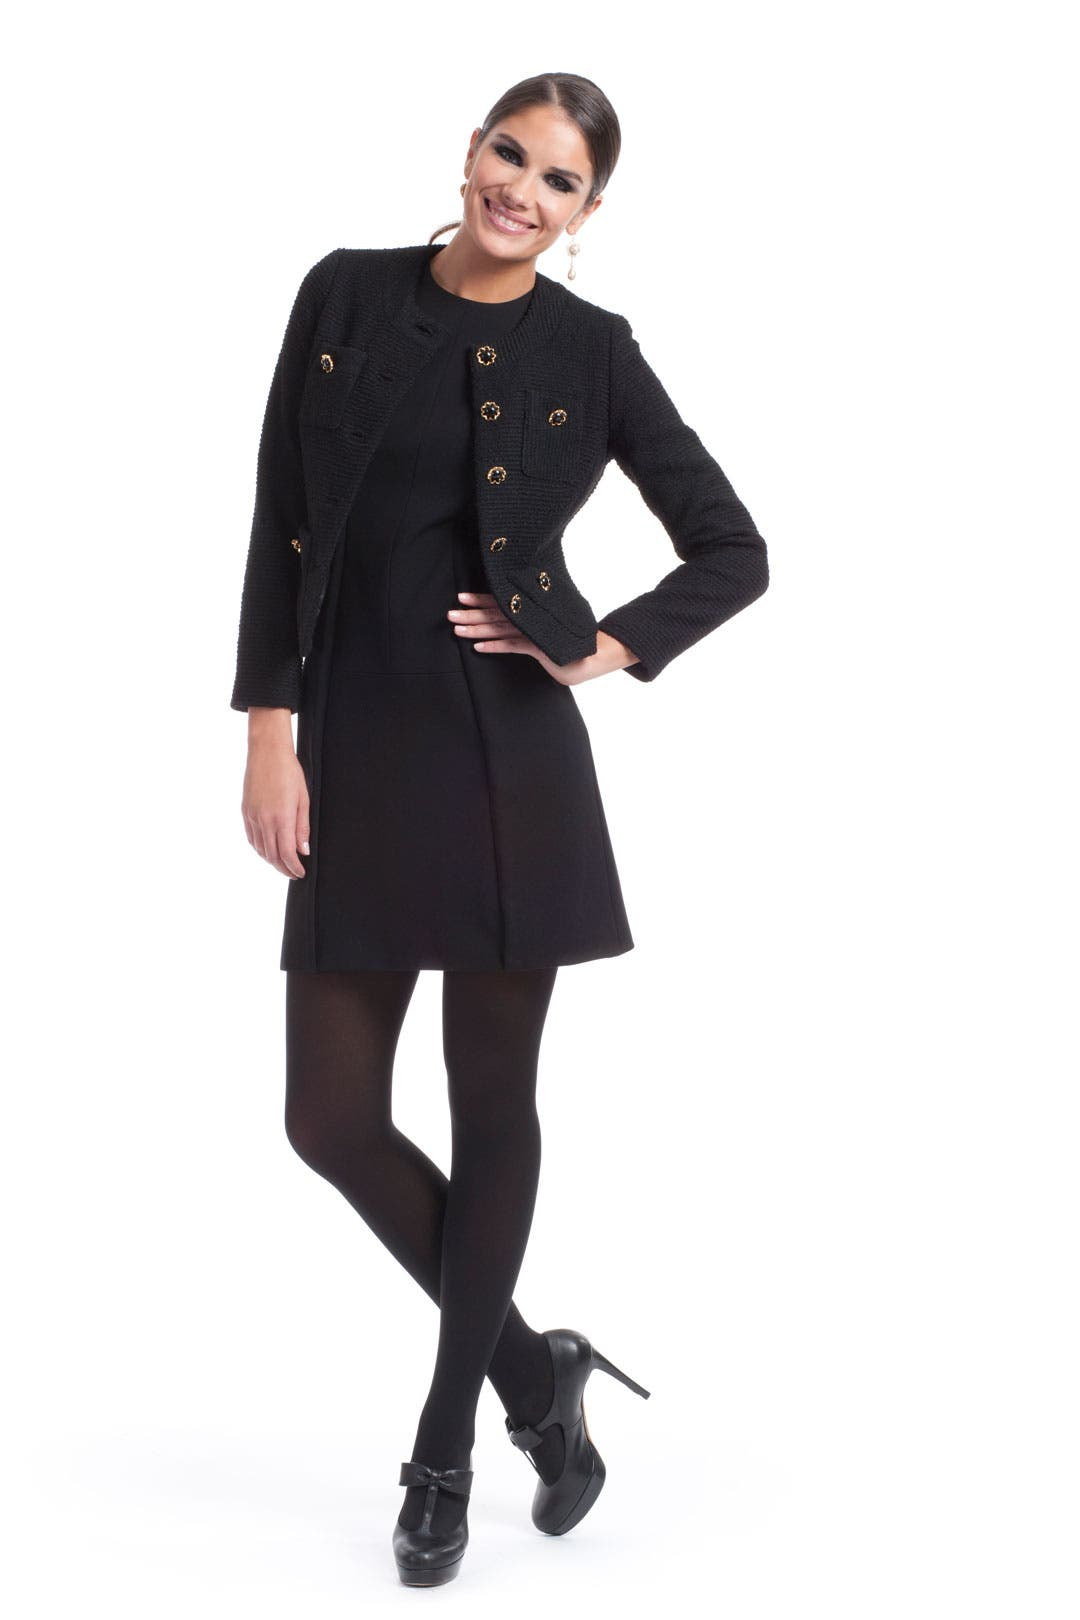 Lady London Jacket by Milly